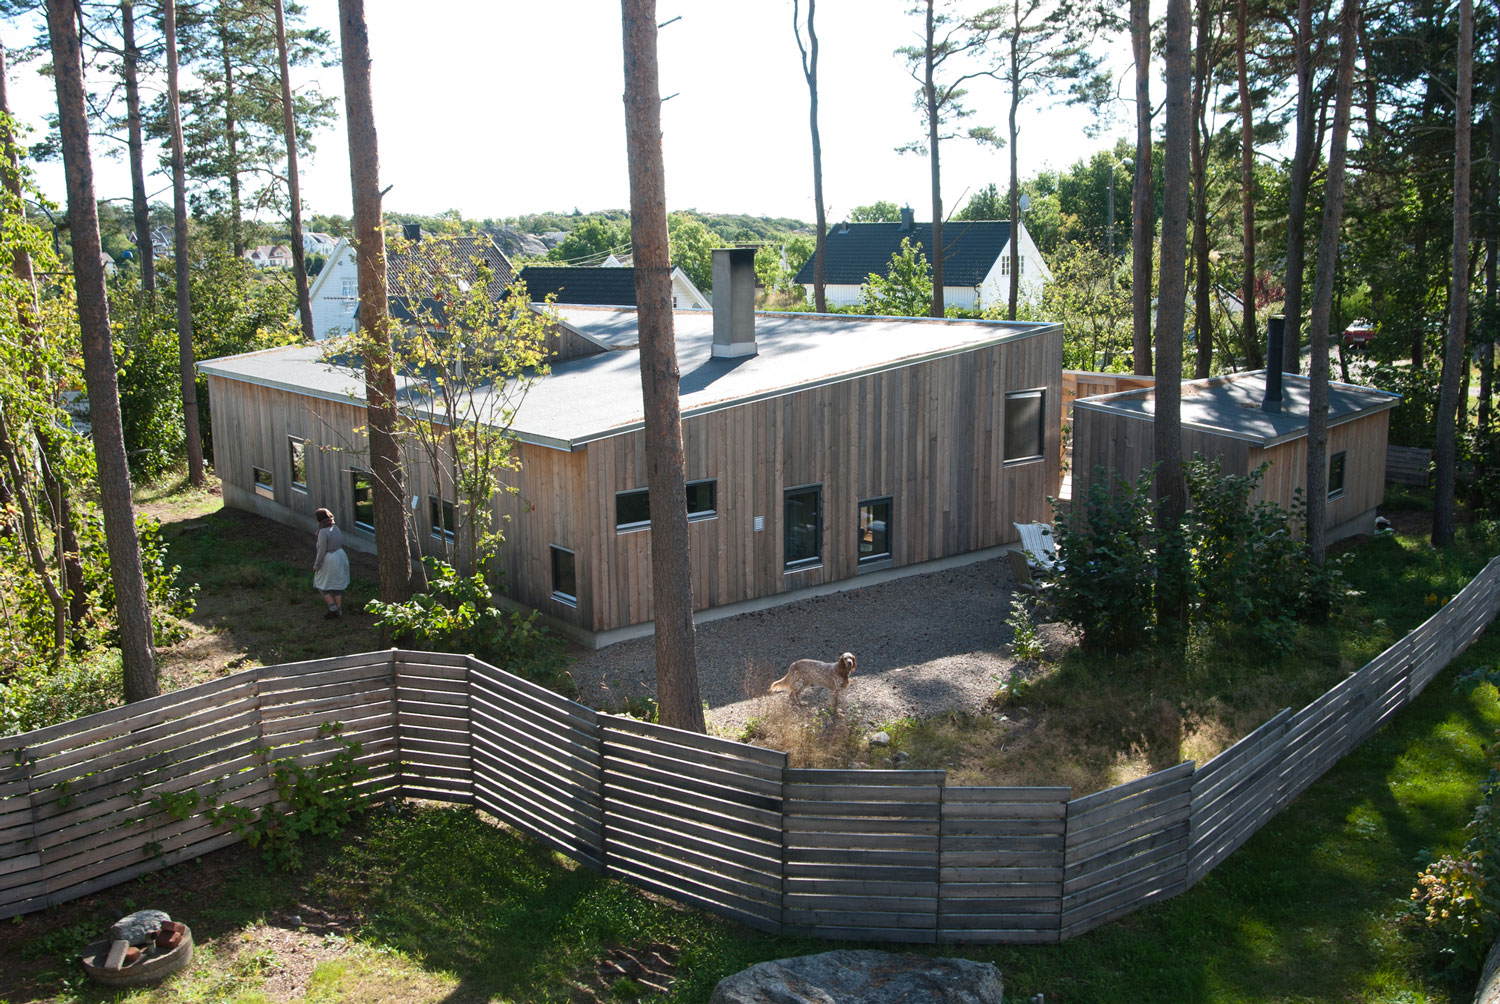 The House in the Thicket by Kasper Bonna Lundgaard M.Arch